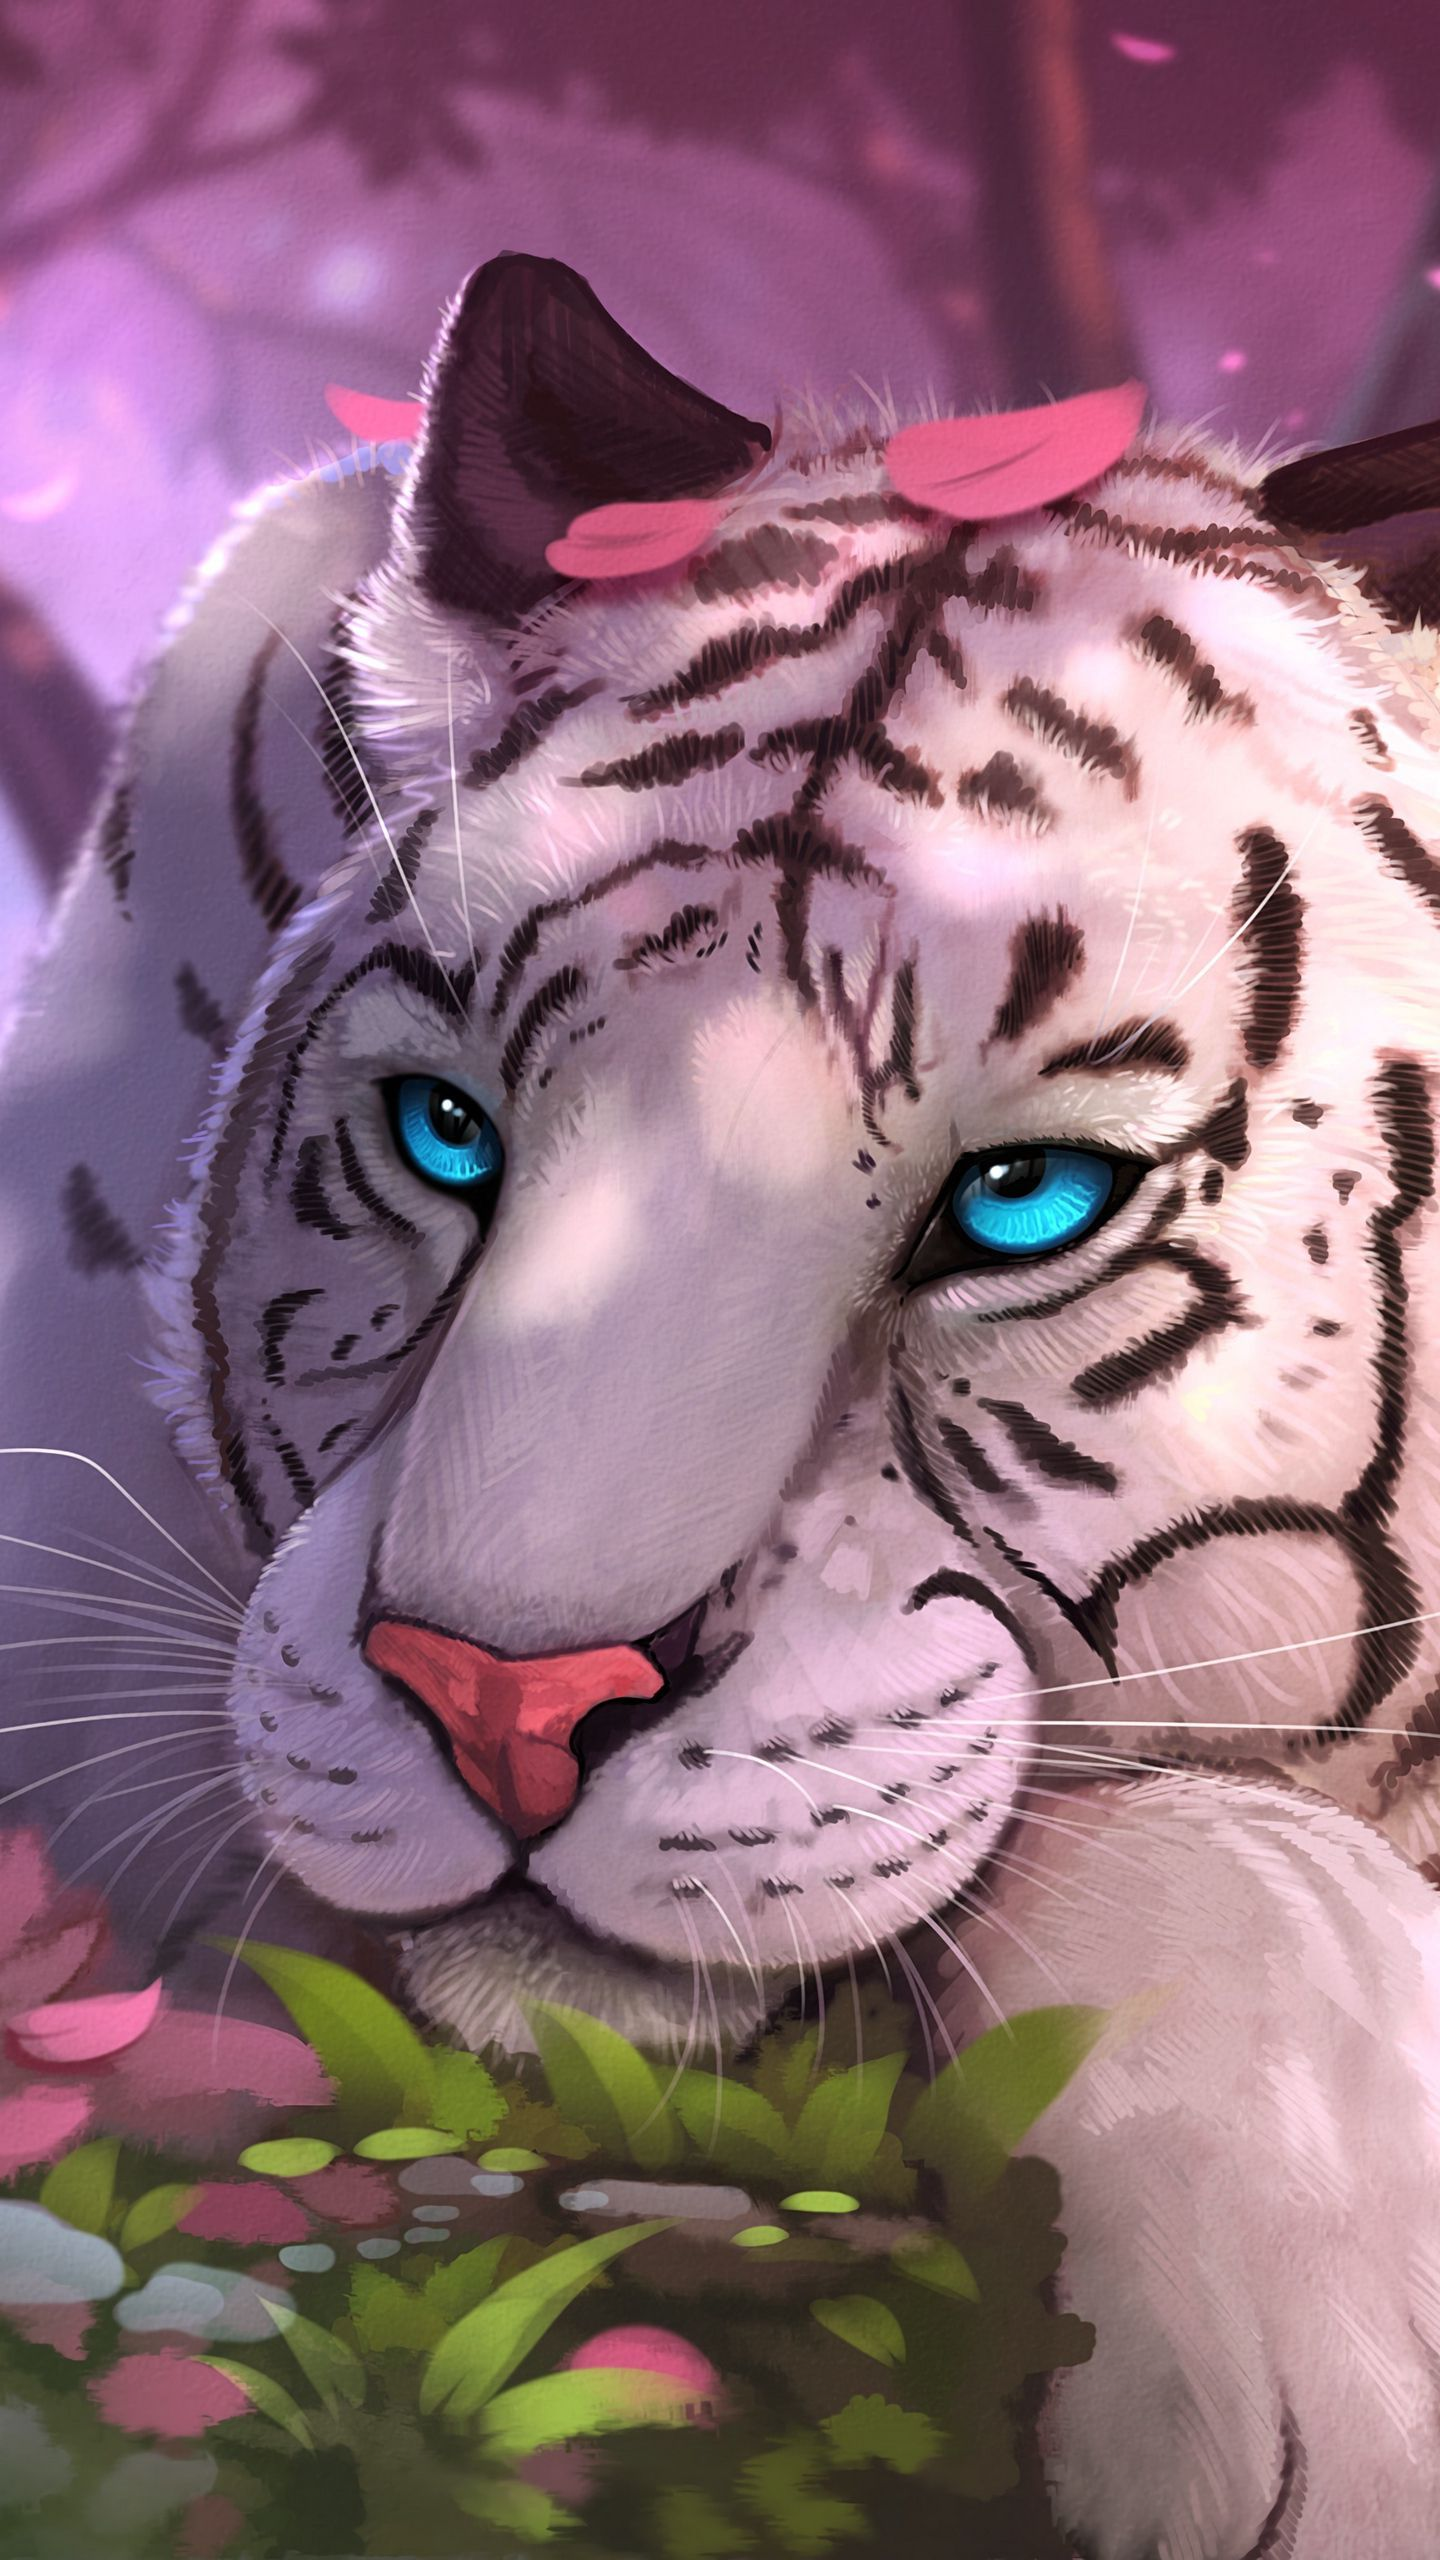 See My Collection Of Awesome Iphone And Android Blue Wallpapers And Background Images In Ultra High Defin Tiger Spirit Animal Cute Animal Drawings Big Cats Art